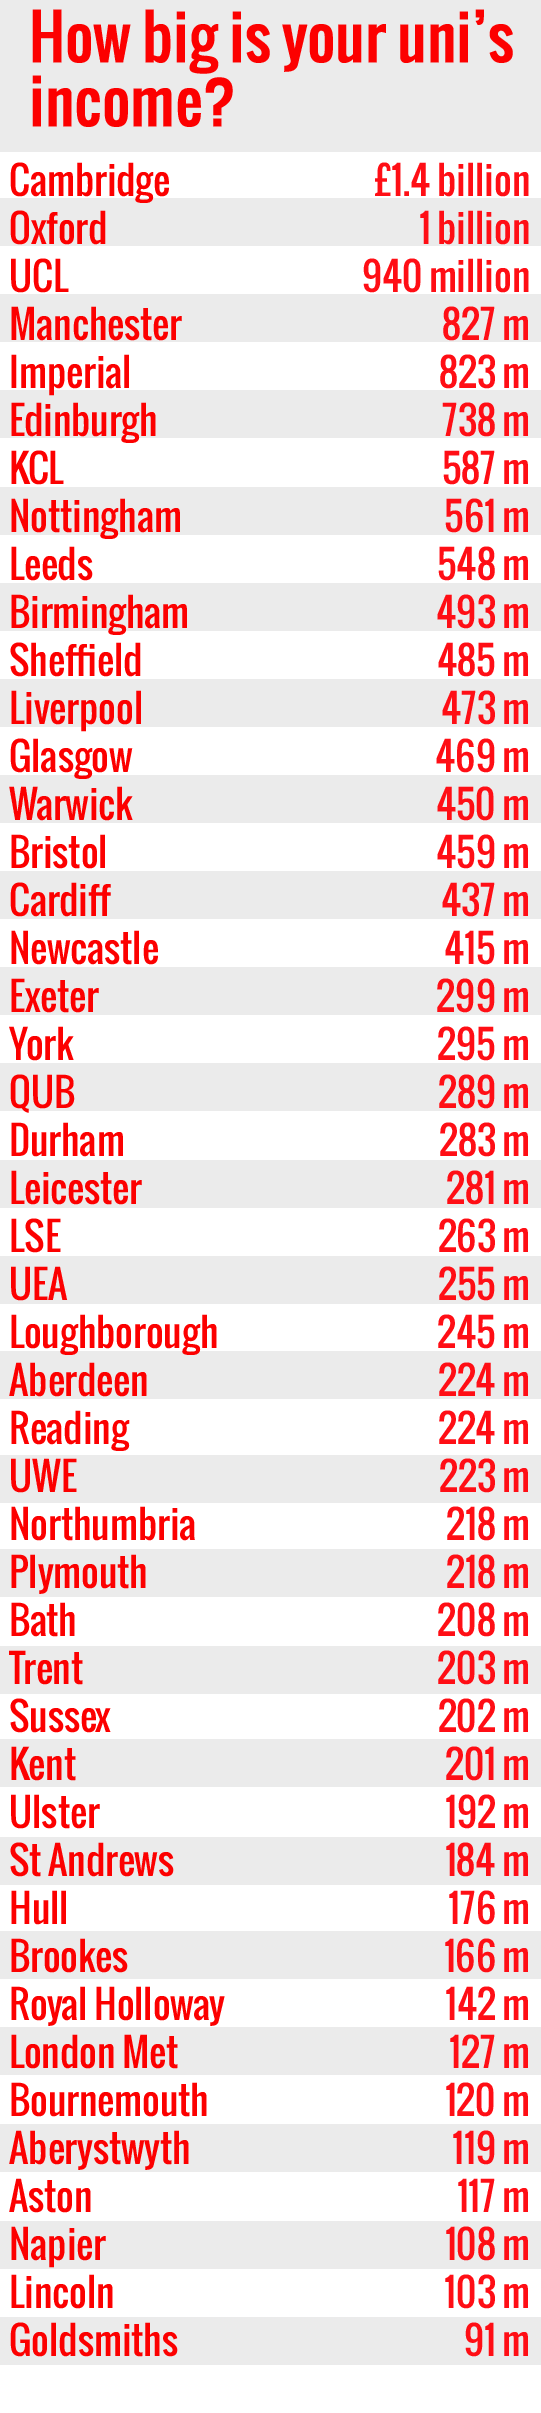 How big is your uni's income